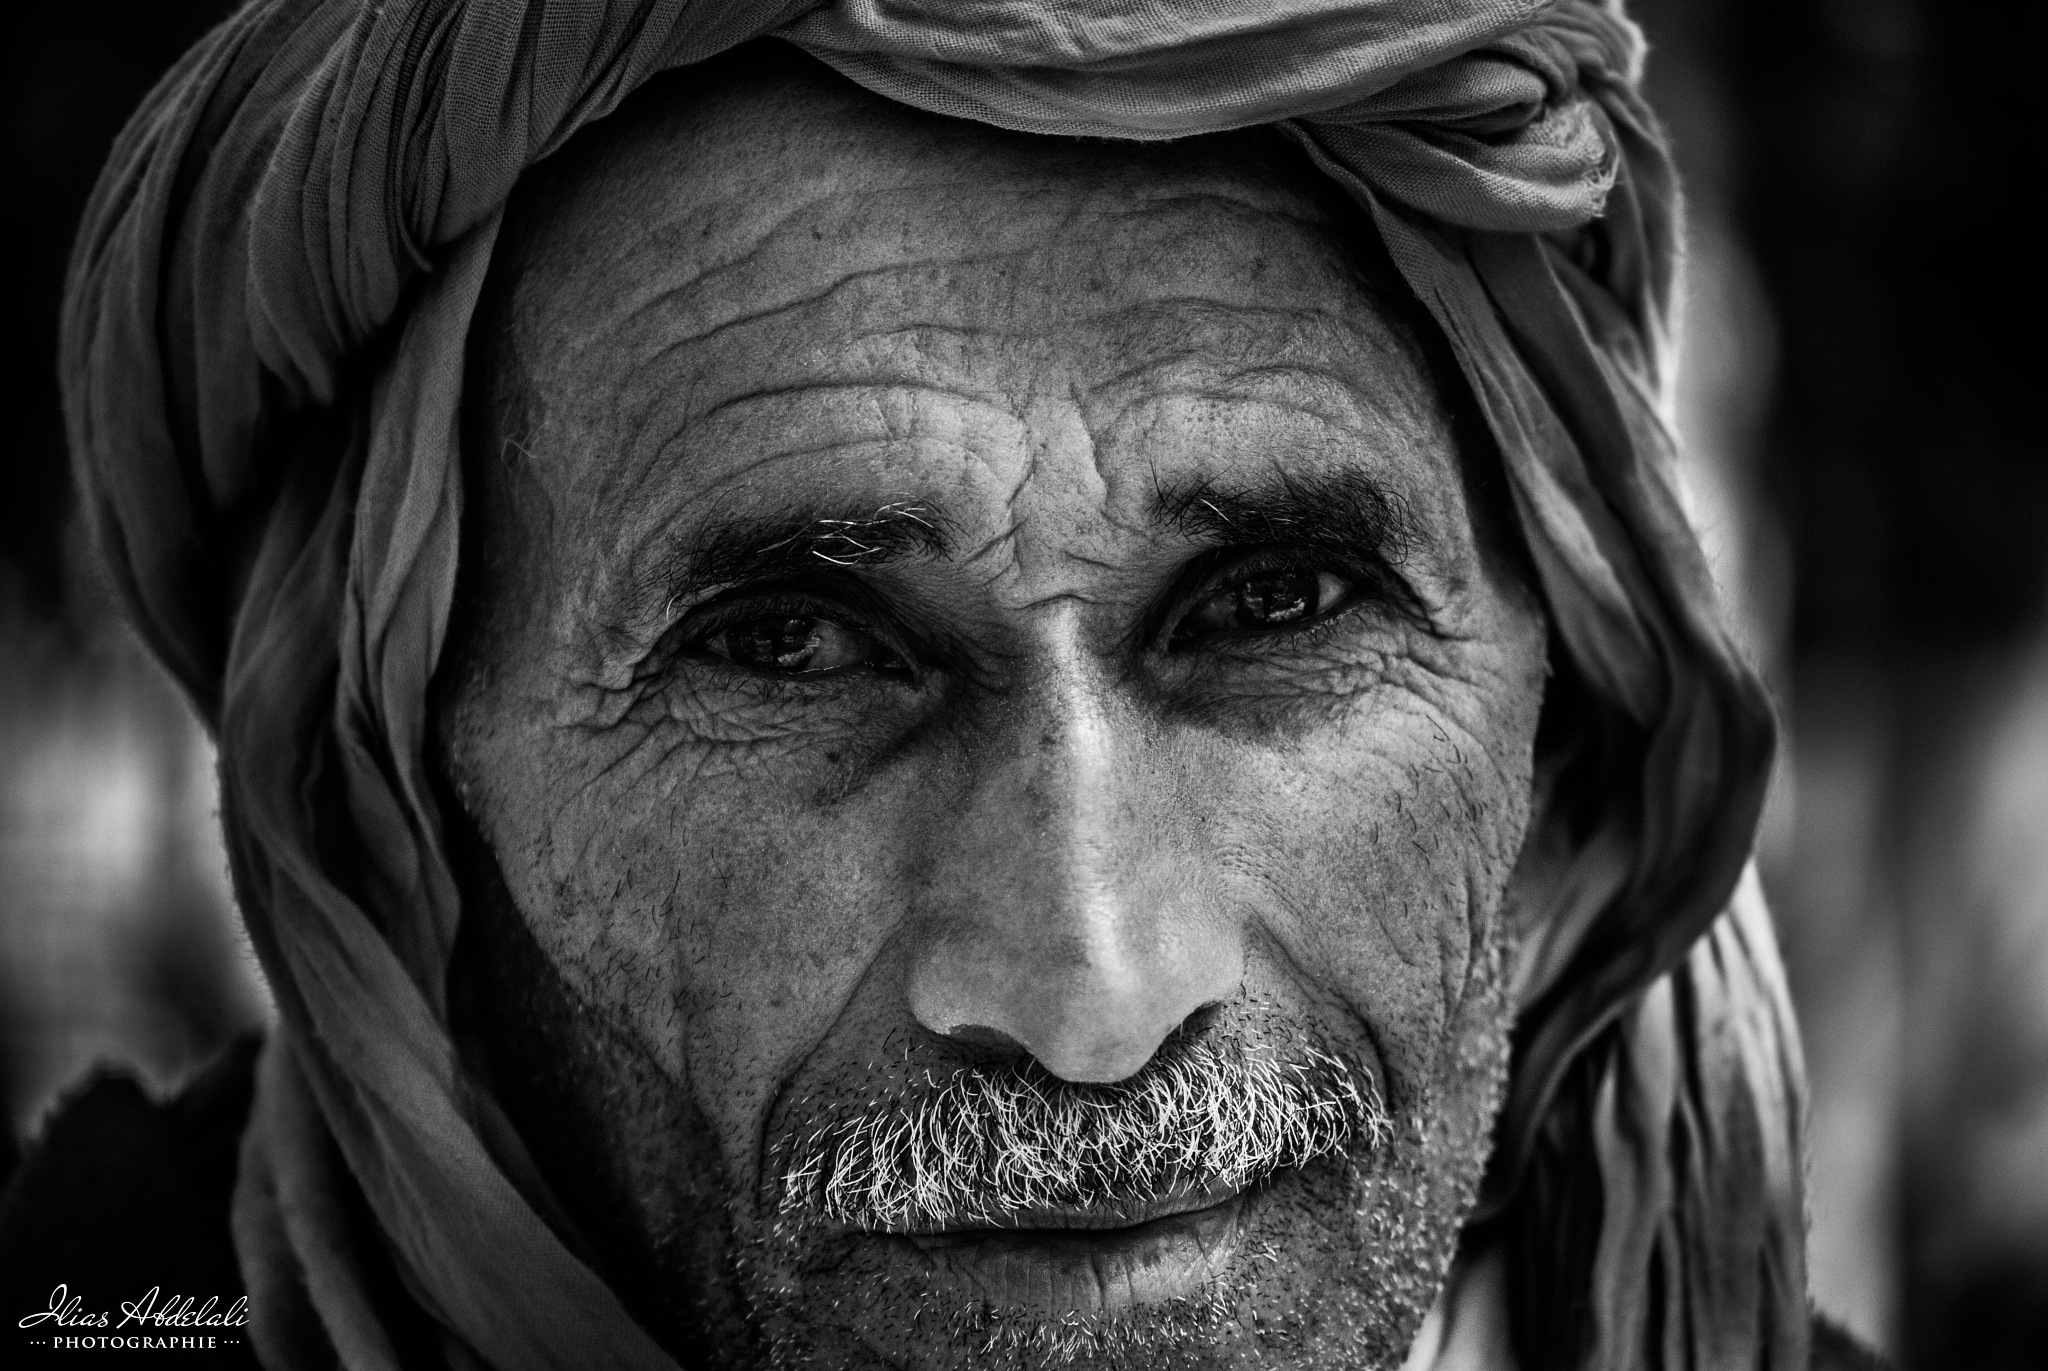 The Old Man by Ilias Abdelali